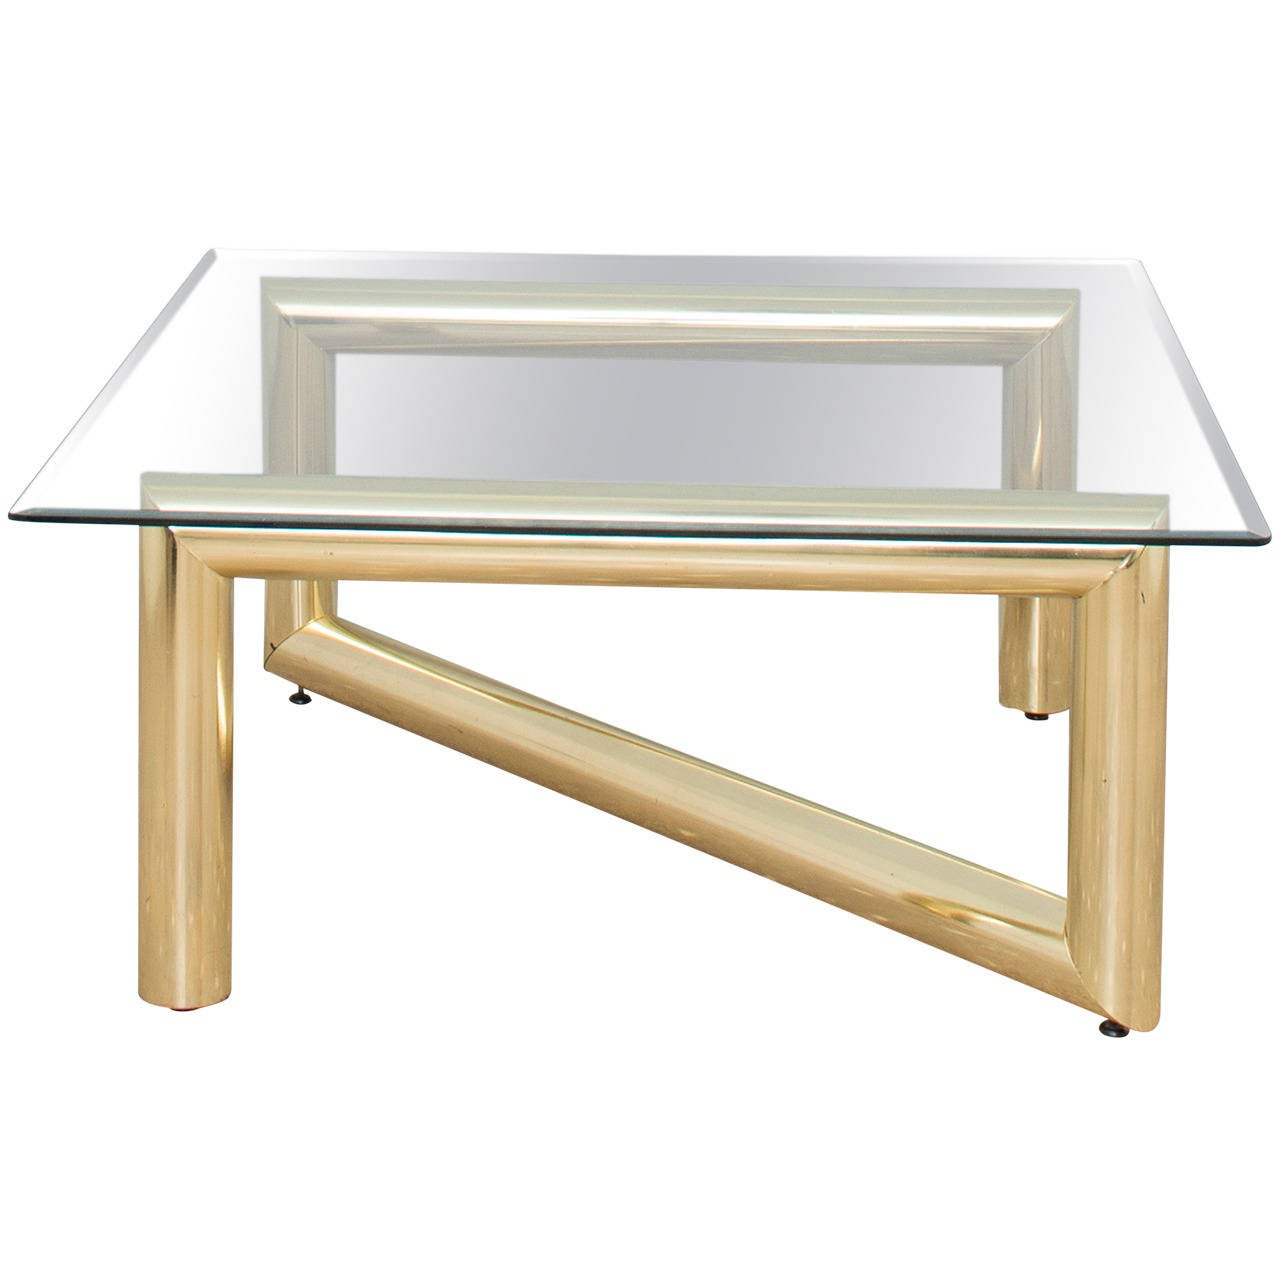 Z Bar Coffee Table For Sale At 1stdibs